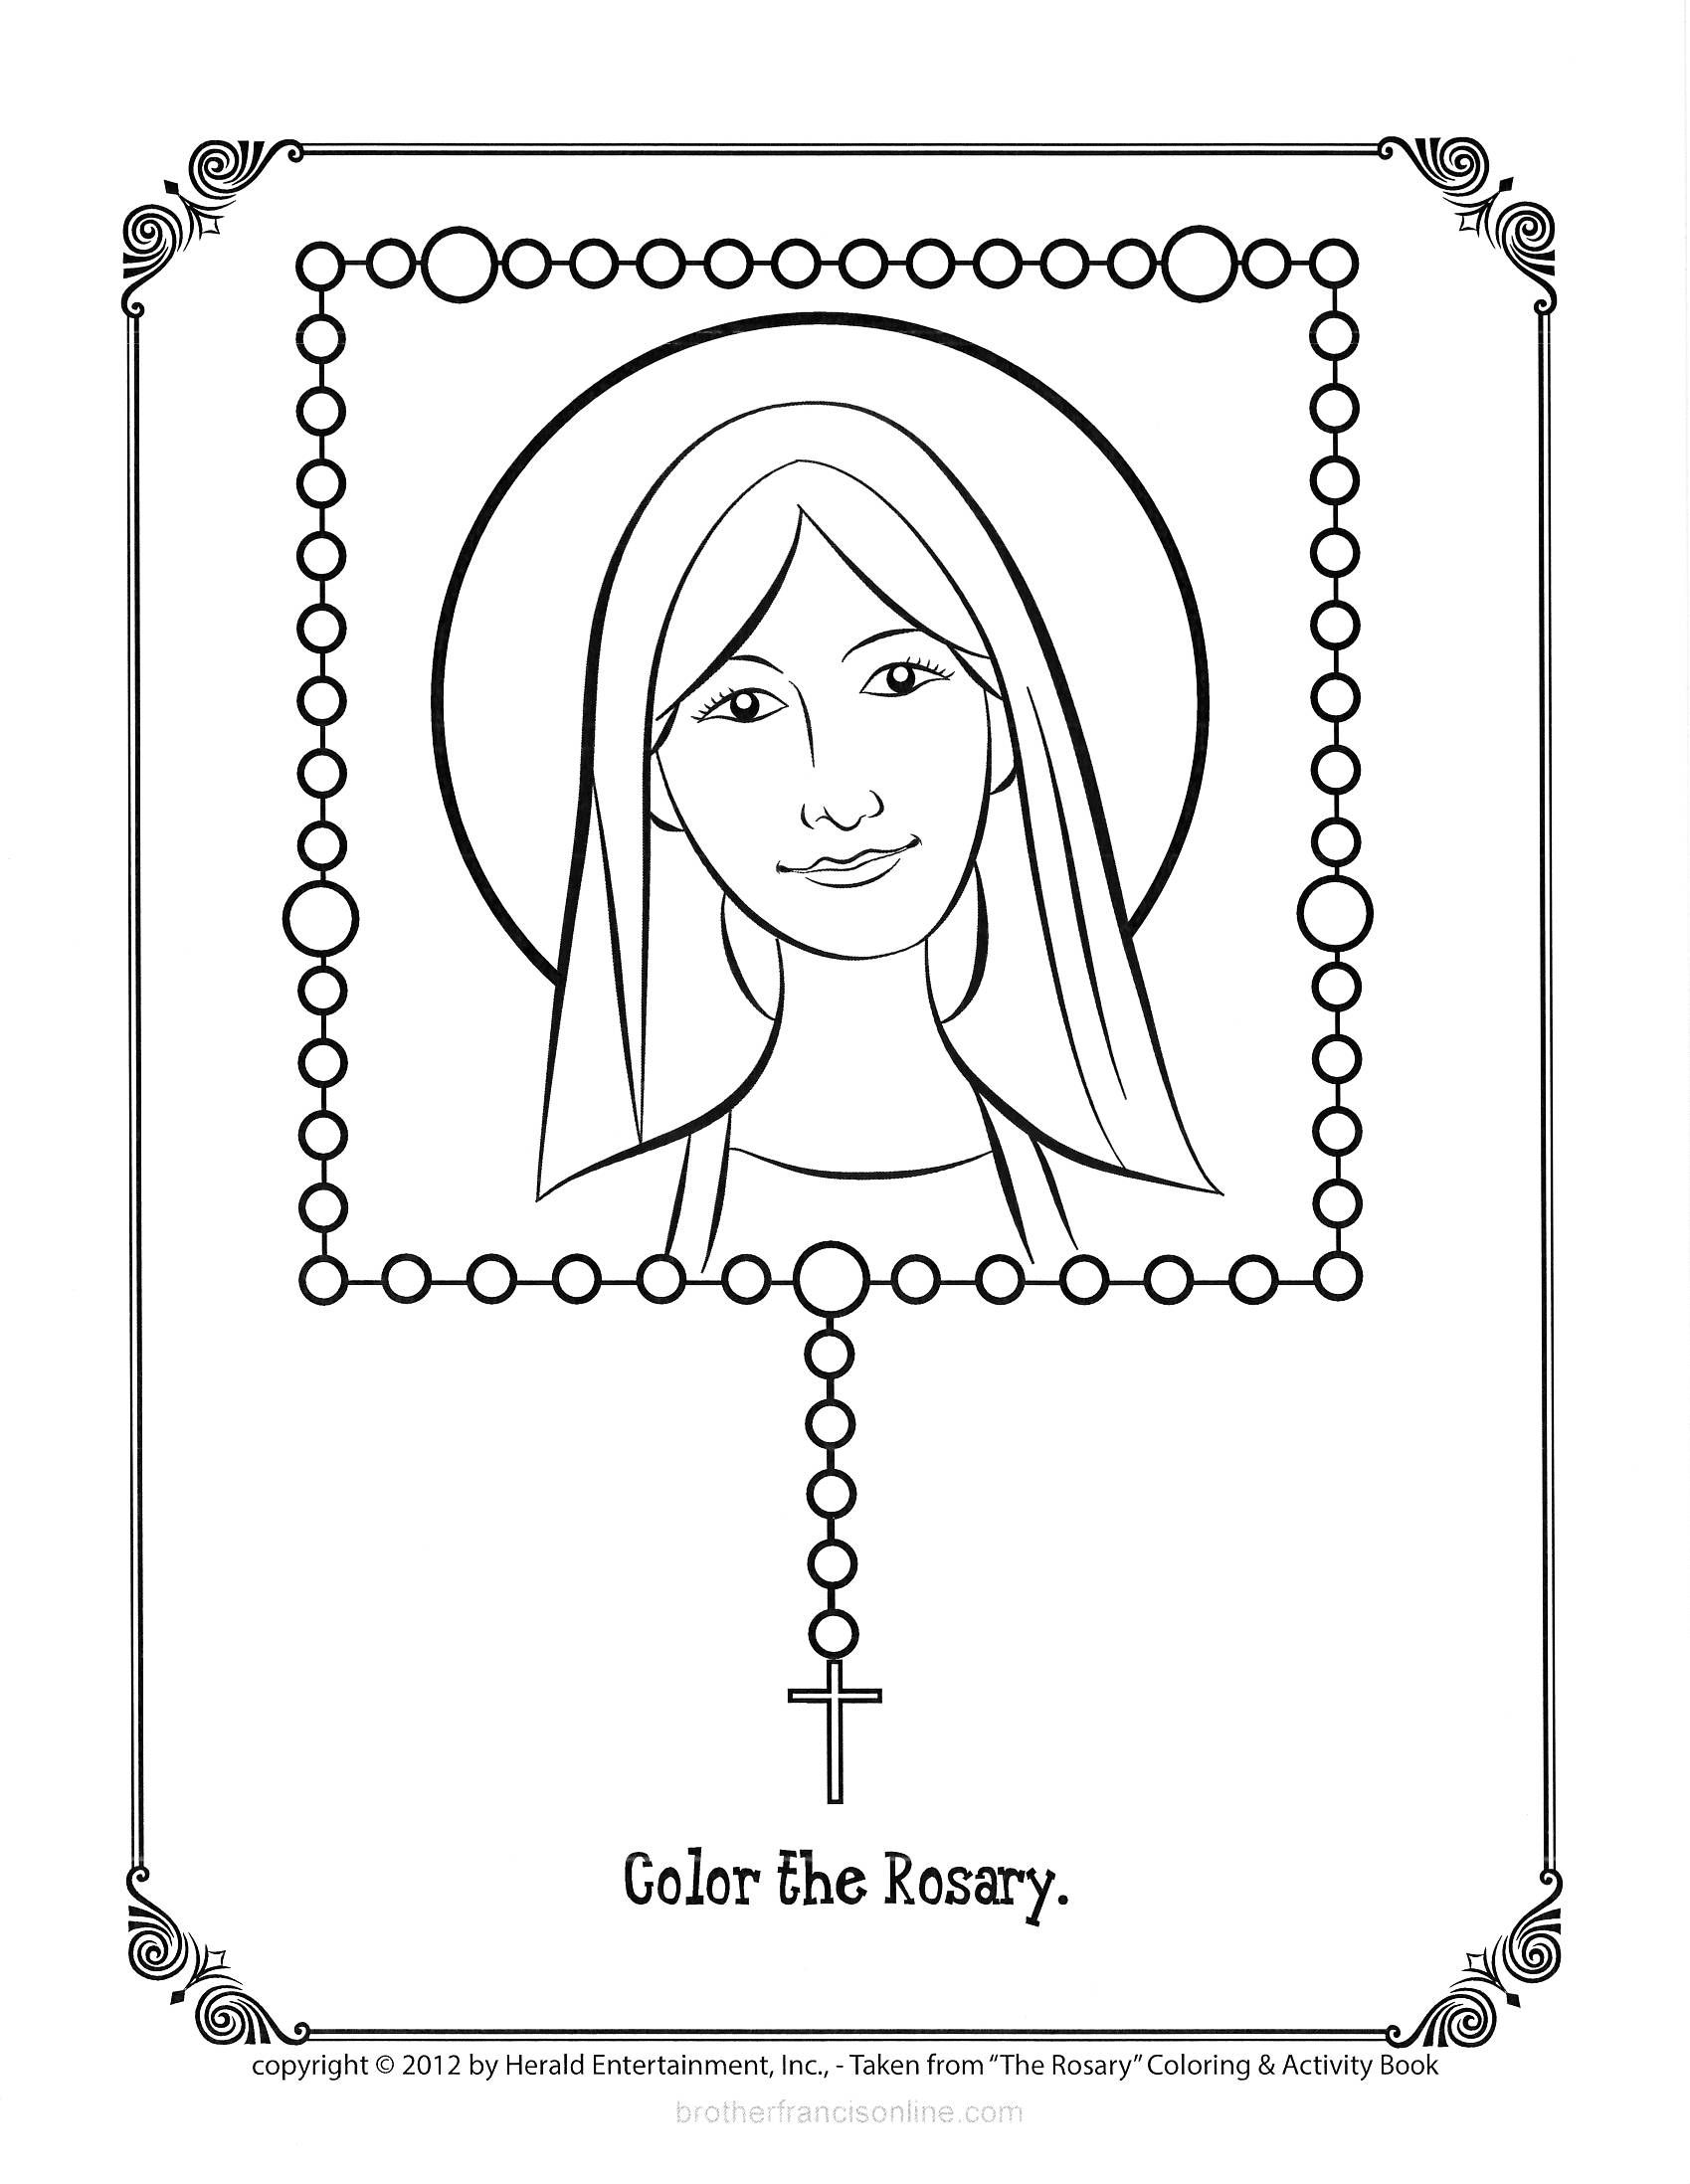 hight resolution of pray and color a rosary bead as you complete each prayer and mystery see our other pins for the rosary booklets in english and spanish as well as folding